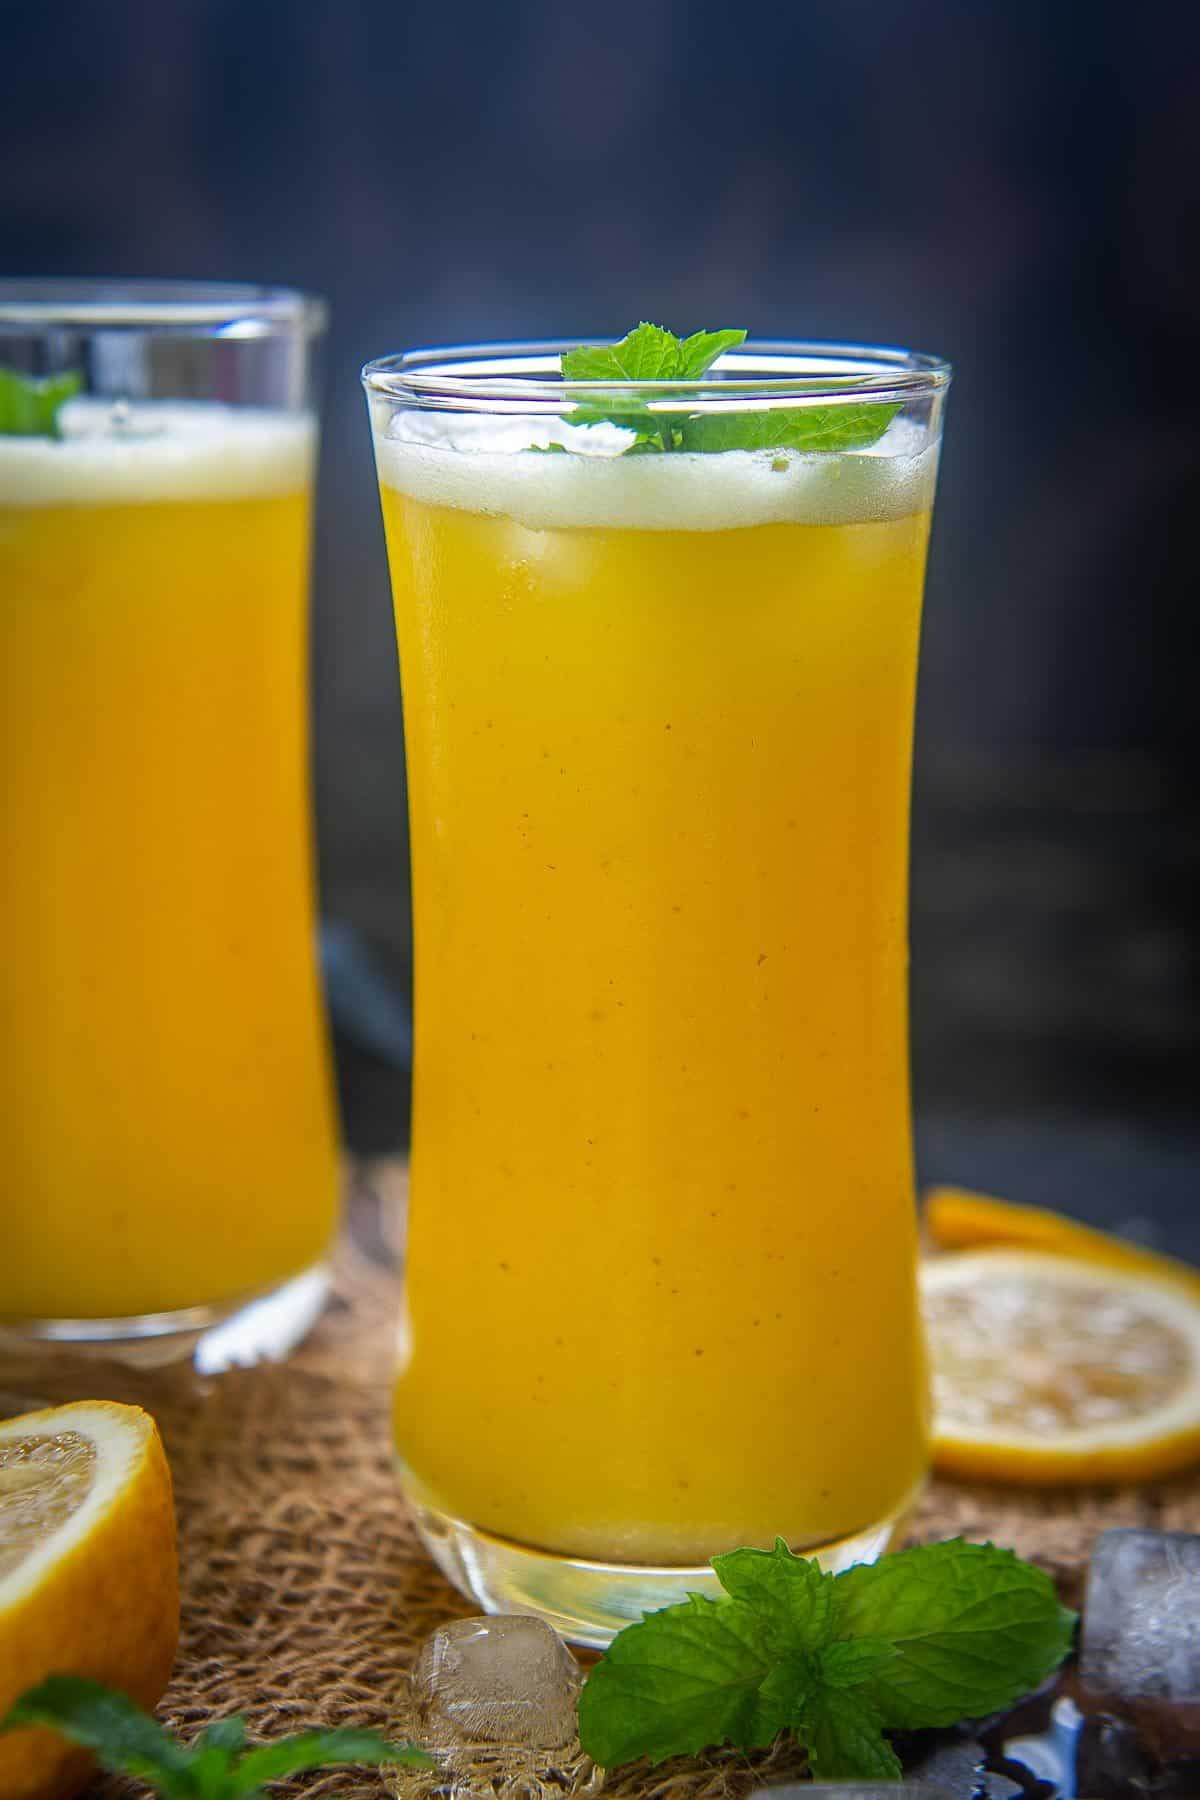 Pineapple juice served in a glass.